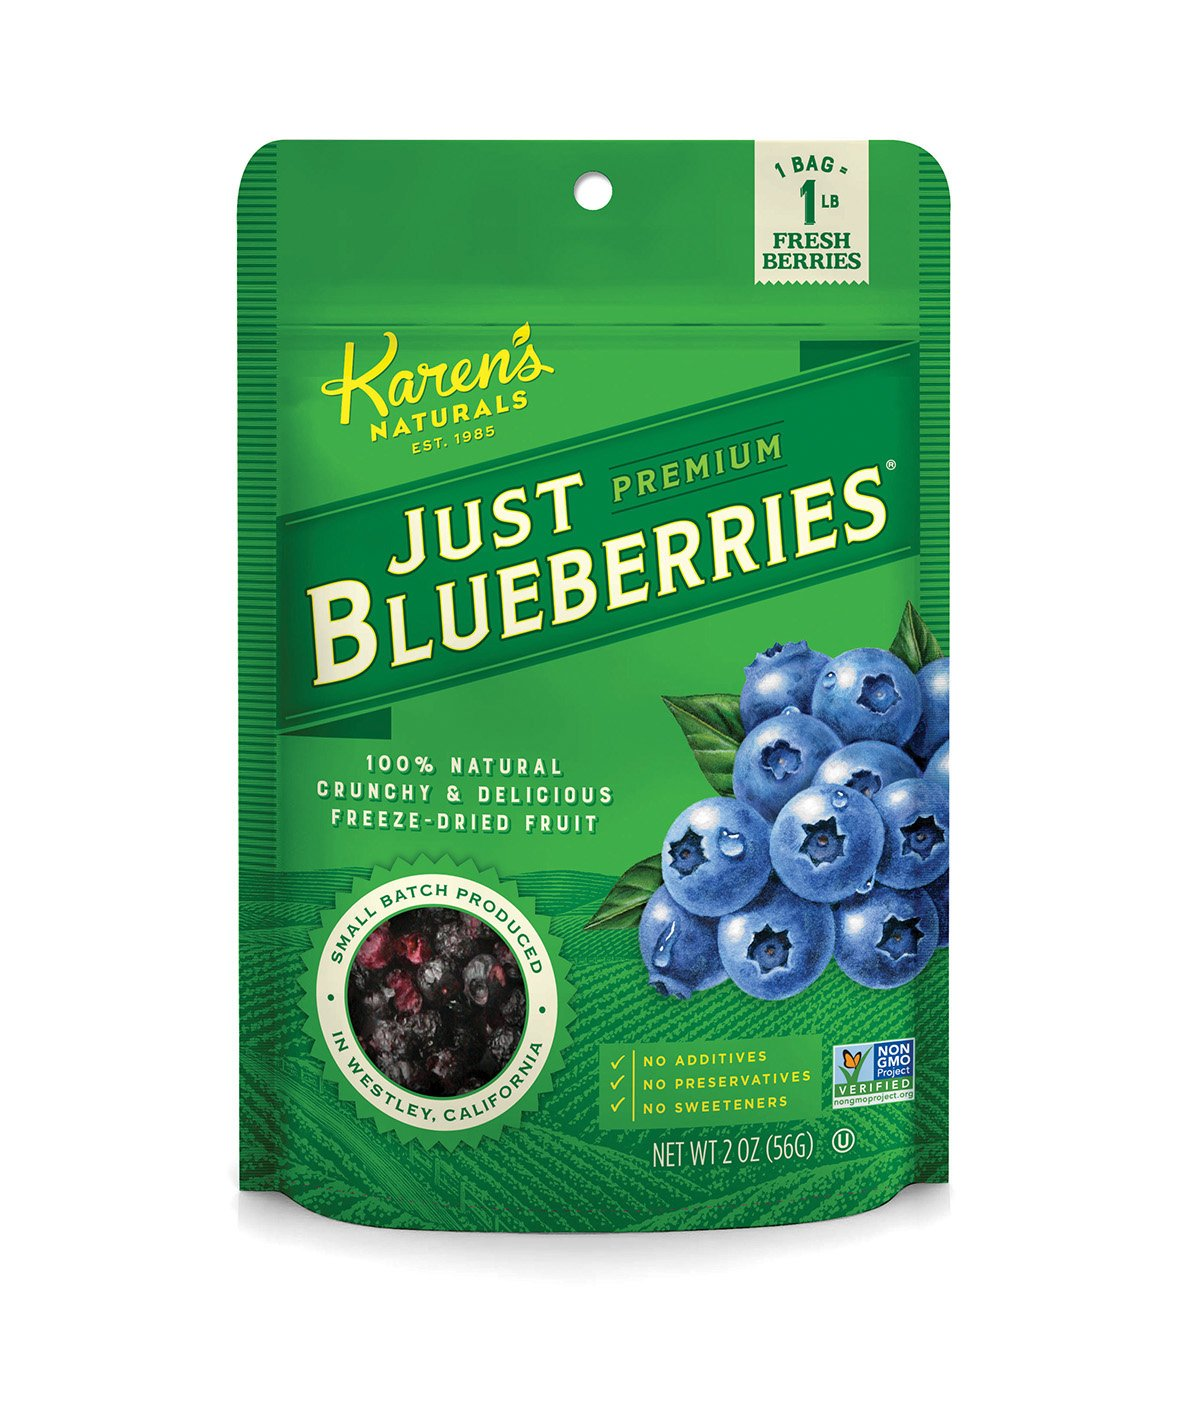 Topics on TV Karen's Product Naturals Just Tomatoes Pouch Ounce Blueberries 2